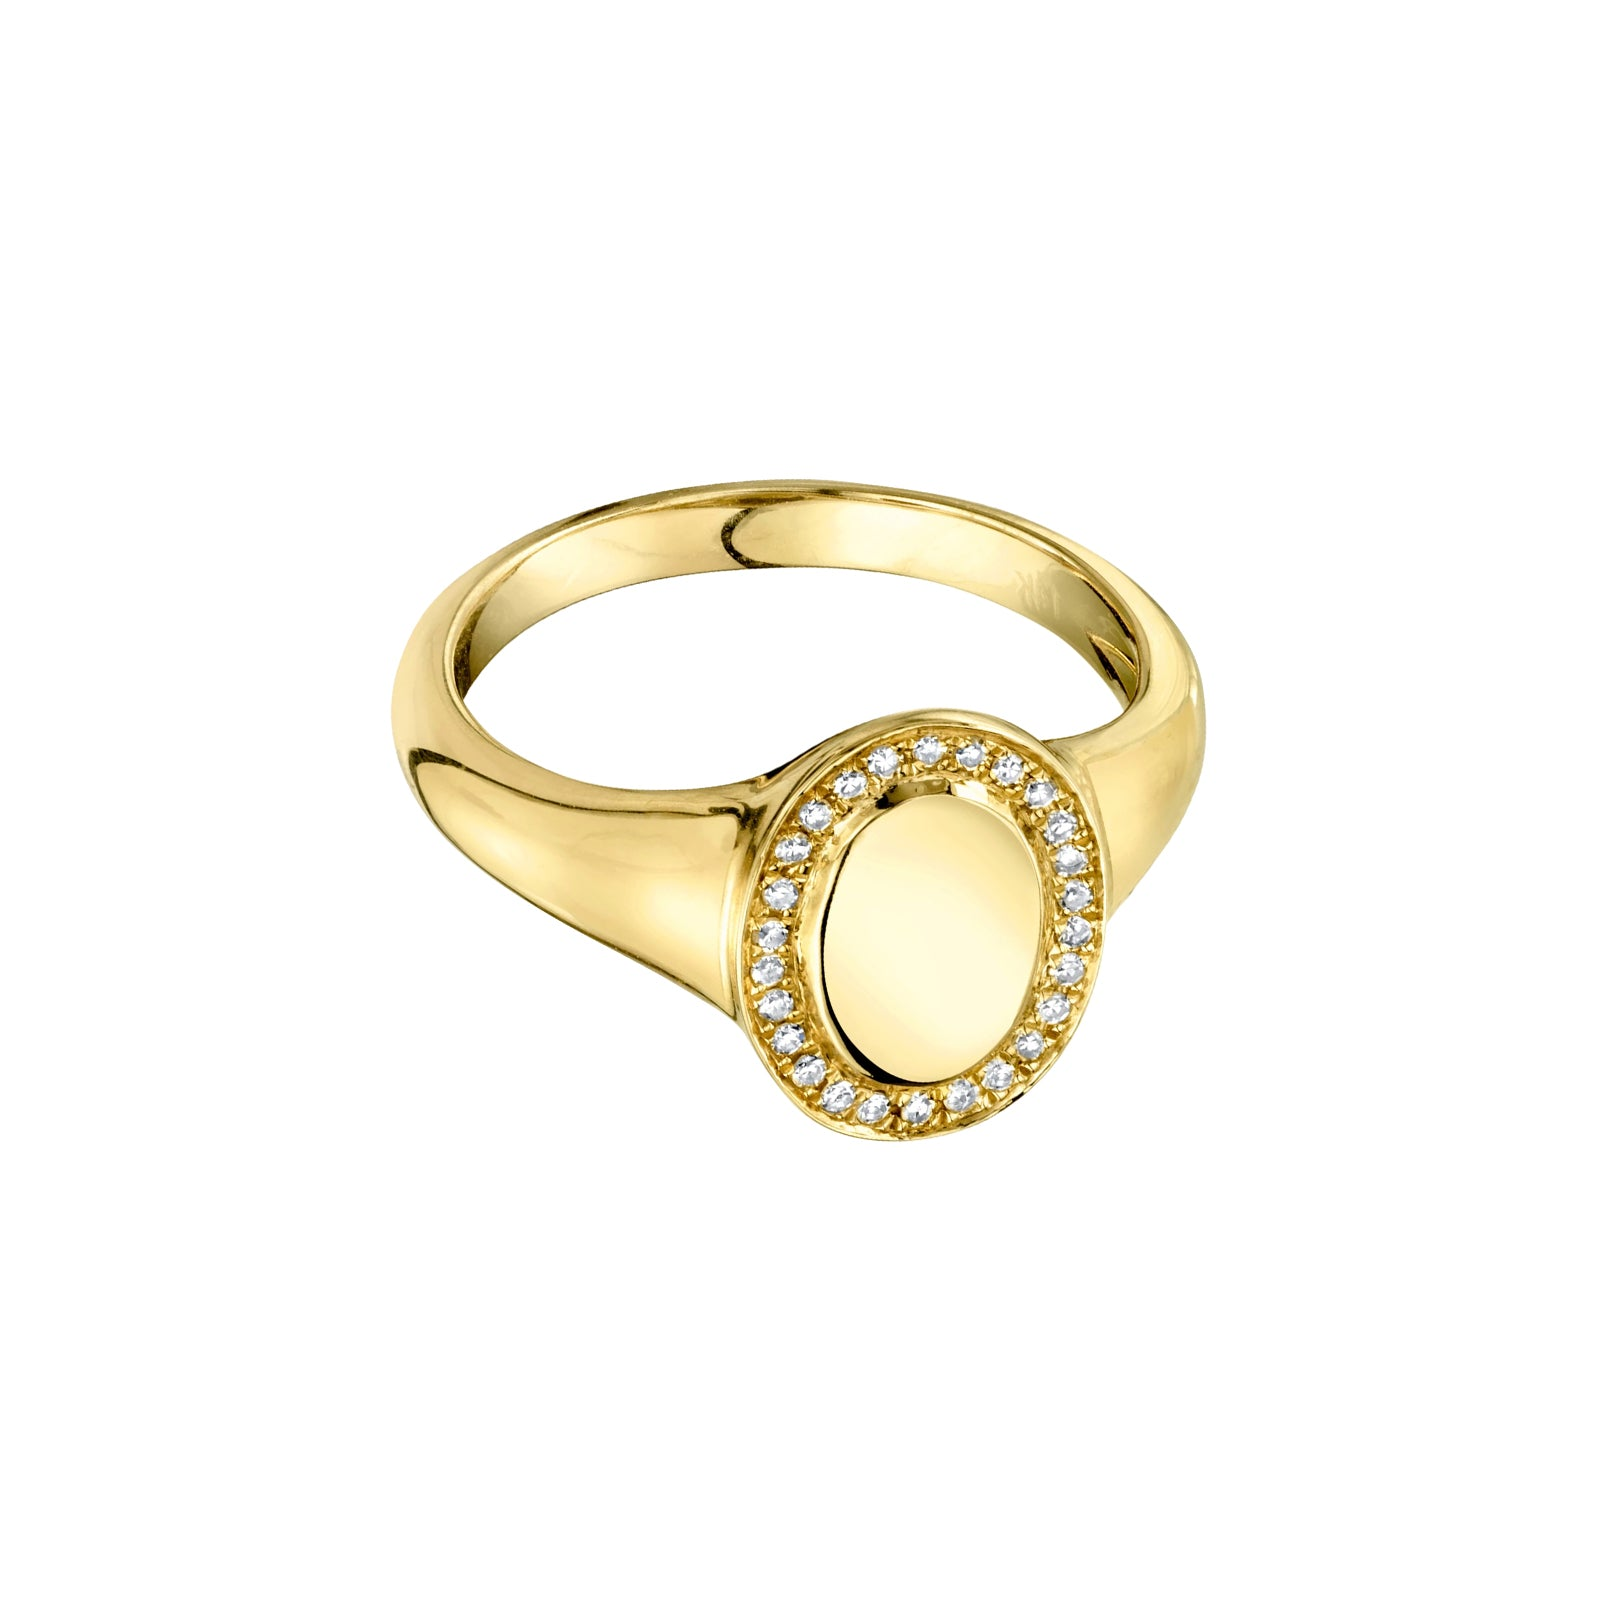 Gabriela Artigas & Company Signet Disc Outline Diamond Ring - Yellow Gold - Rings - Broken English Jewelry